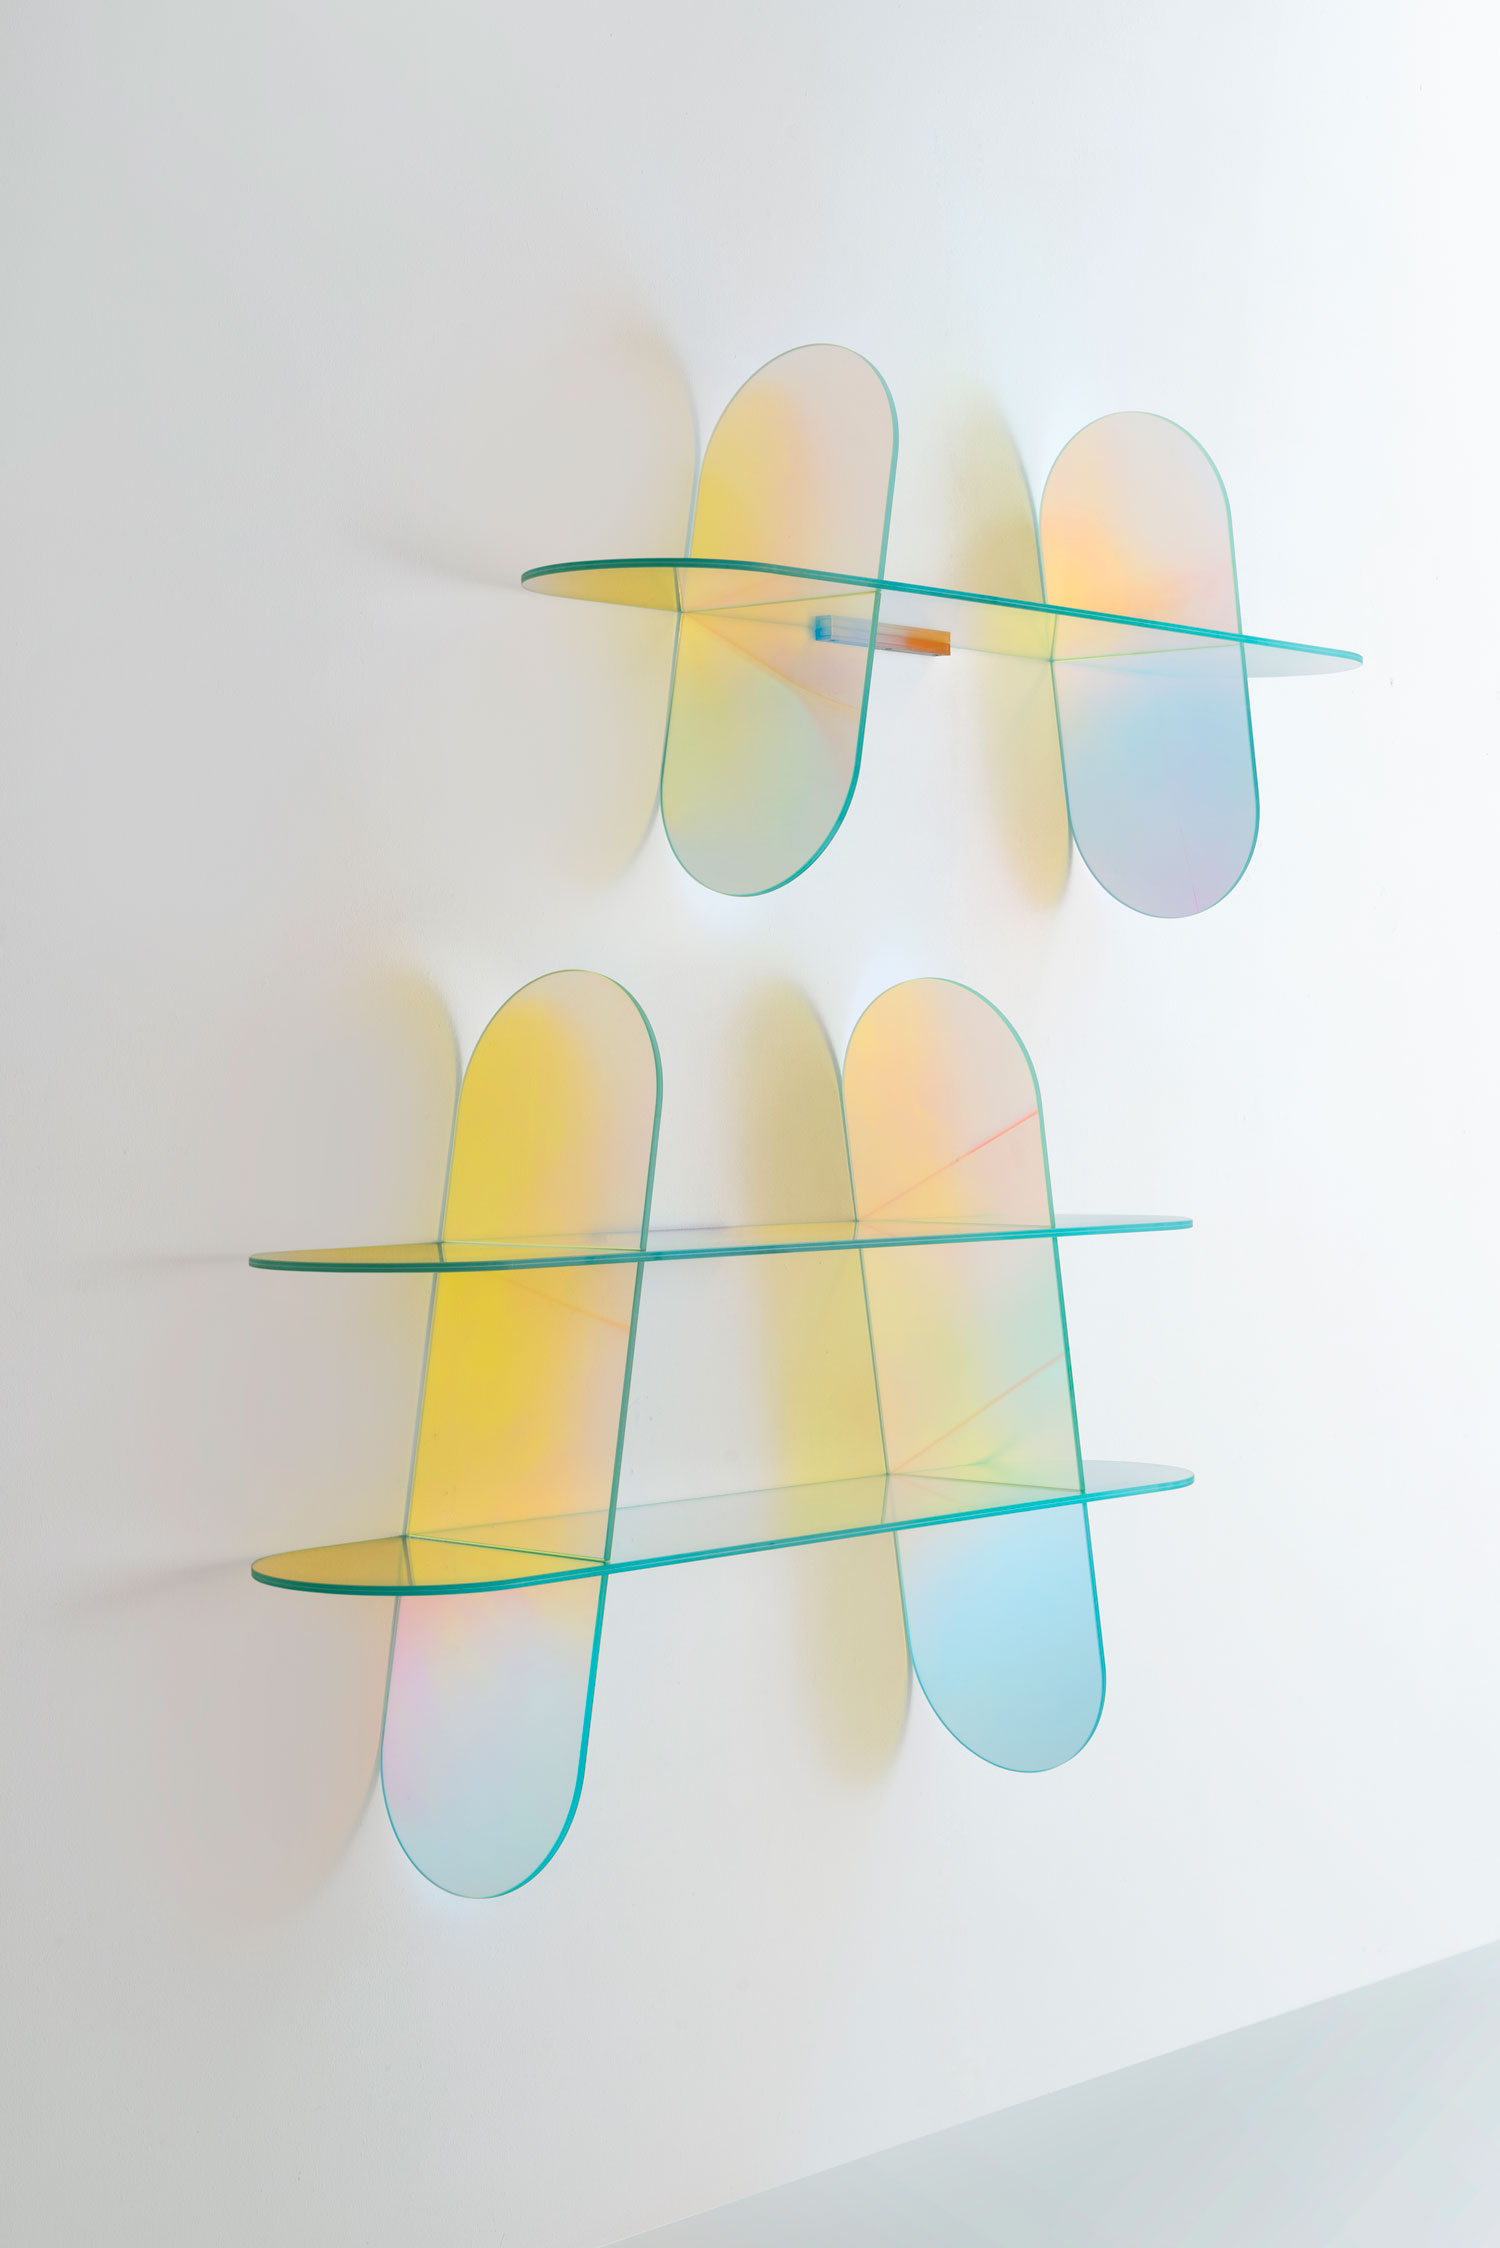 Glas Italia SHIMMER shelf by Patricia Urquiola - Best of Salone Del Mobile 2015   Yellowtrace